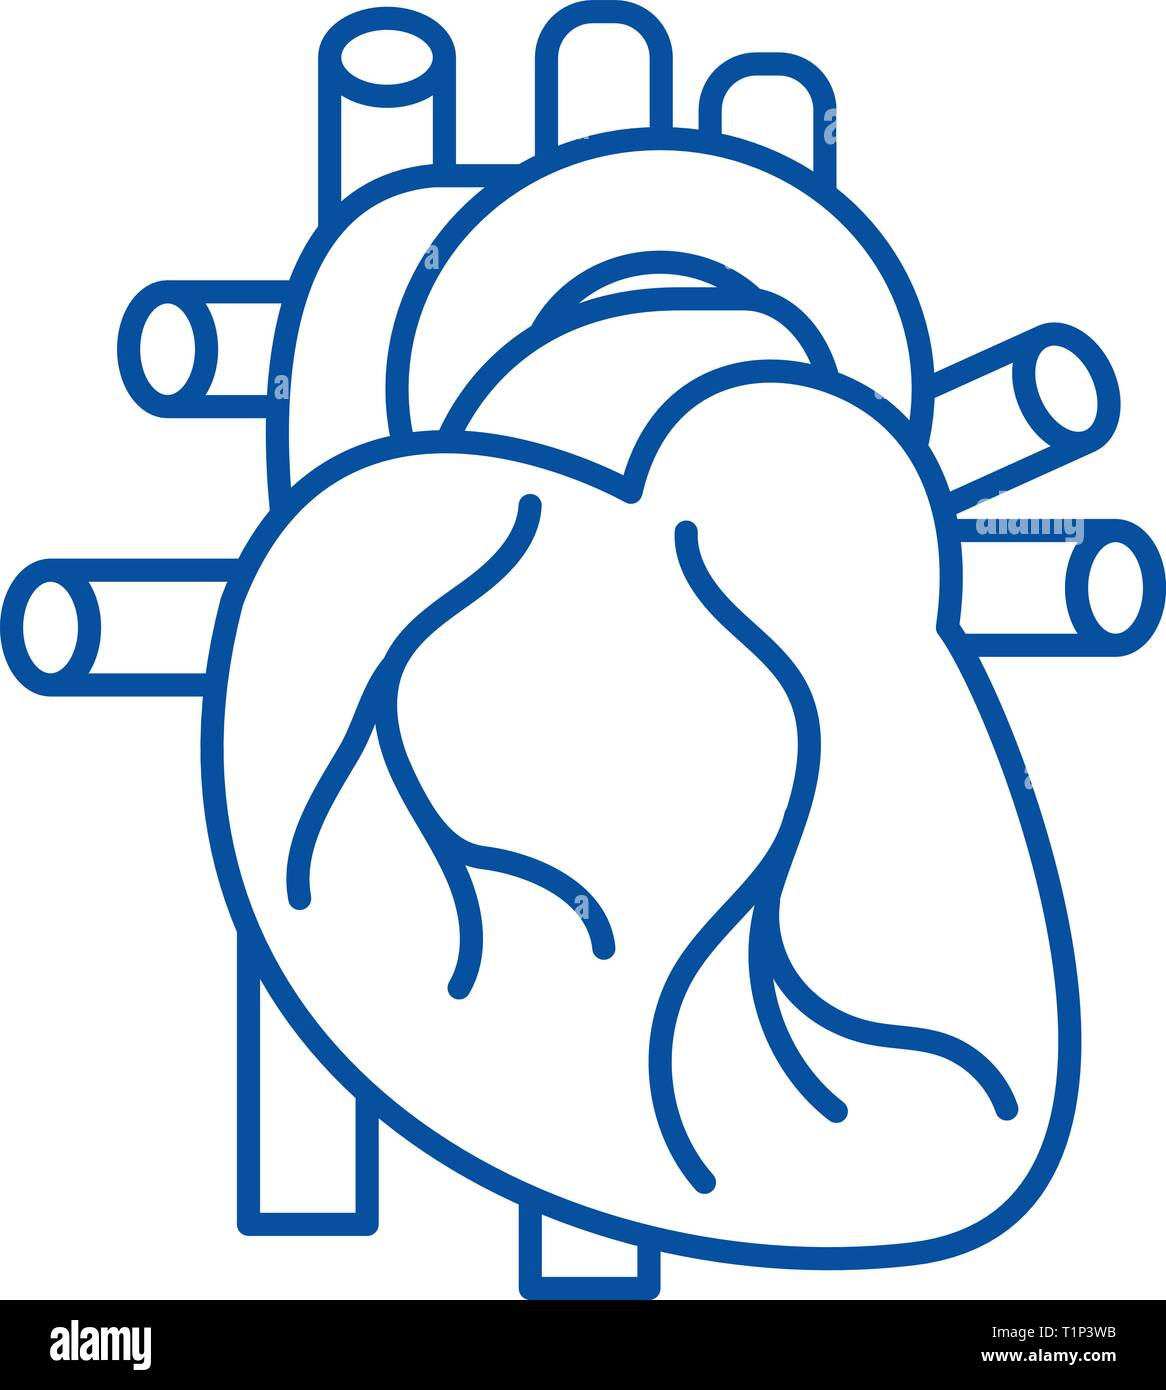 Human heart line icon concept. Human heart flat  vector symbol, sign, outline illustration. - Stock Image